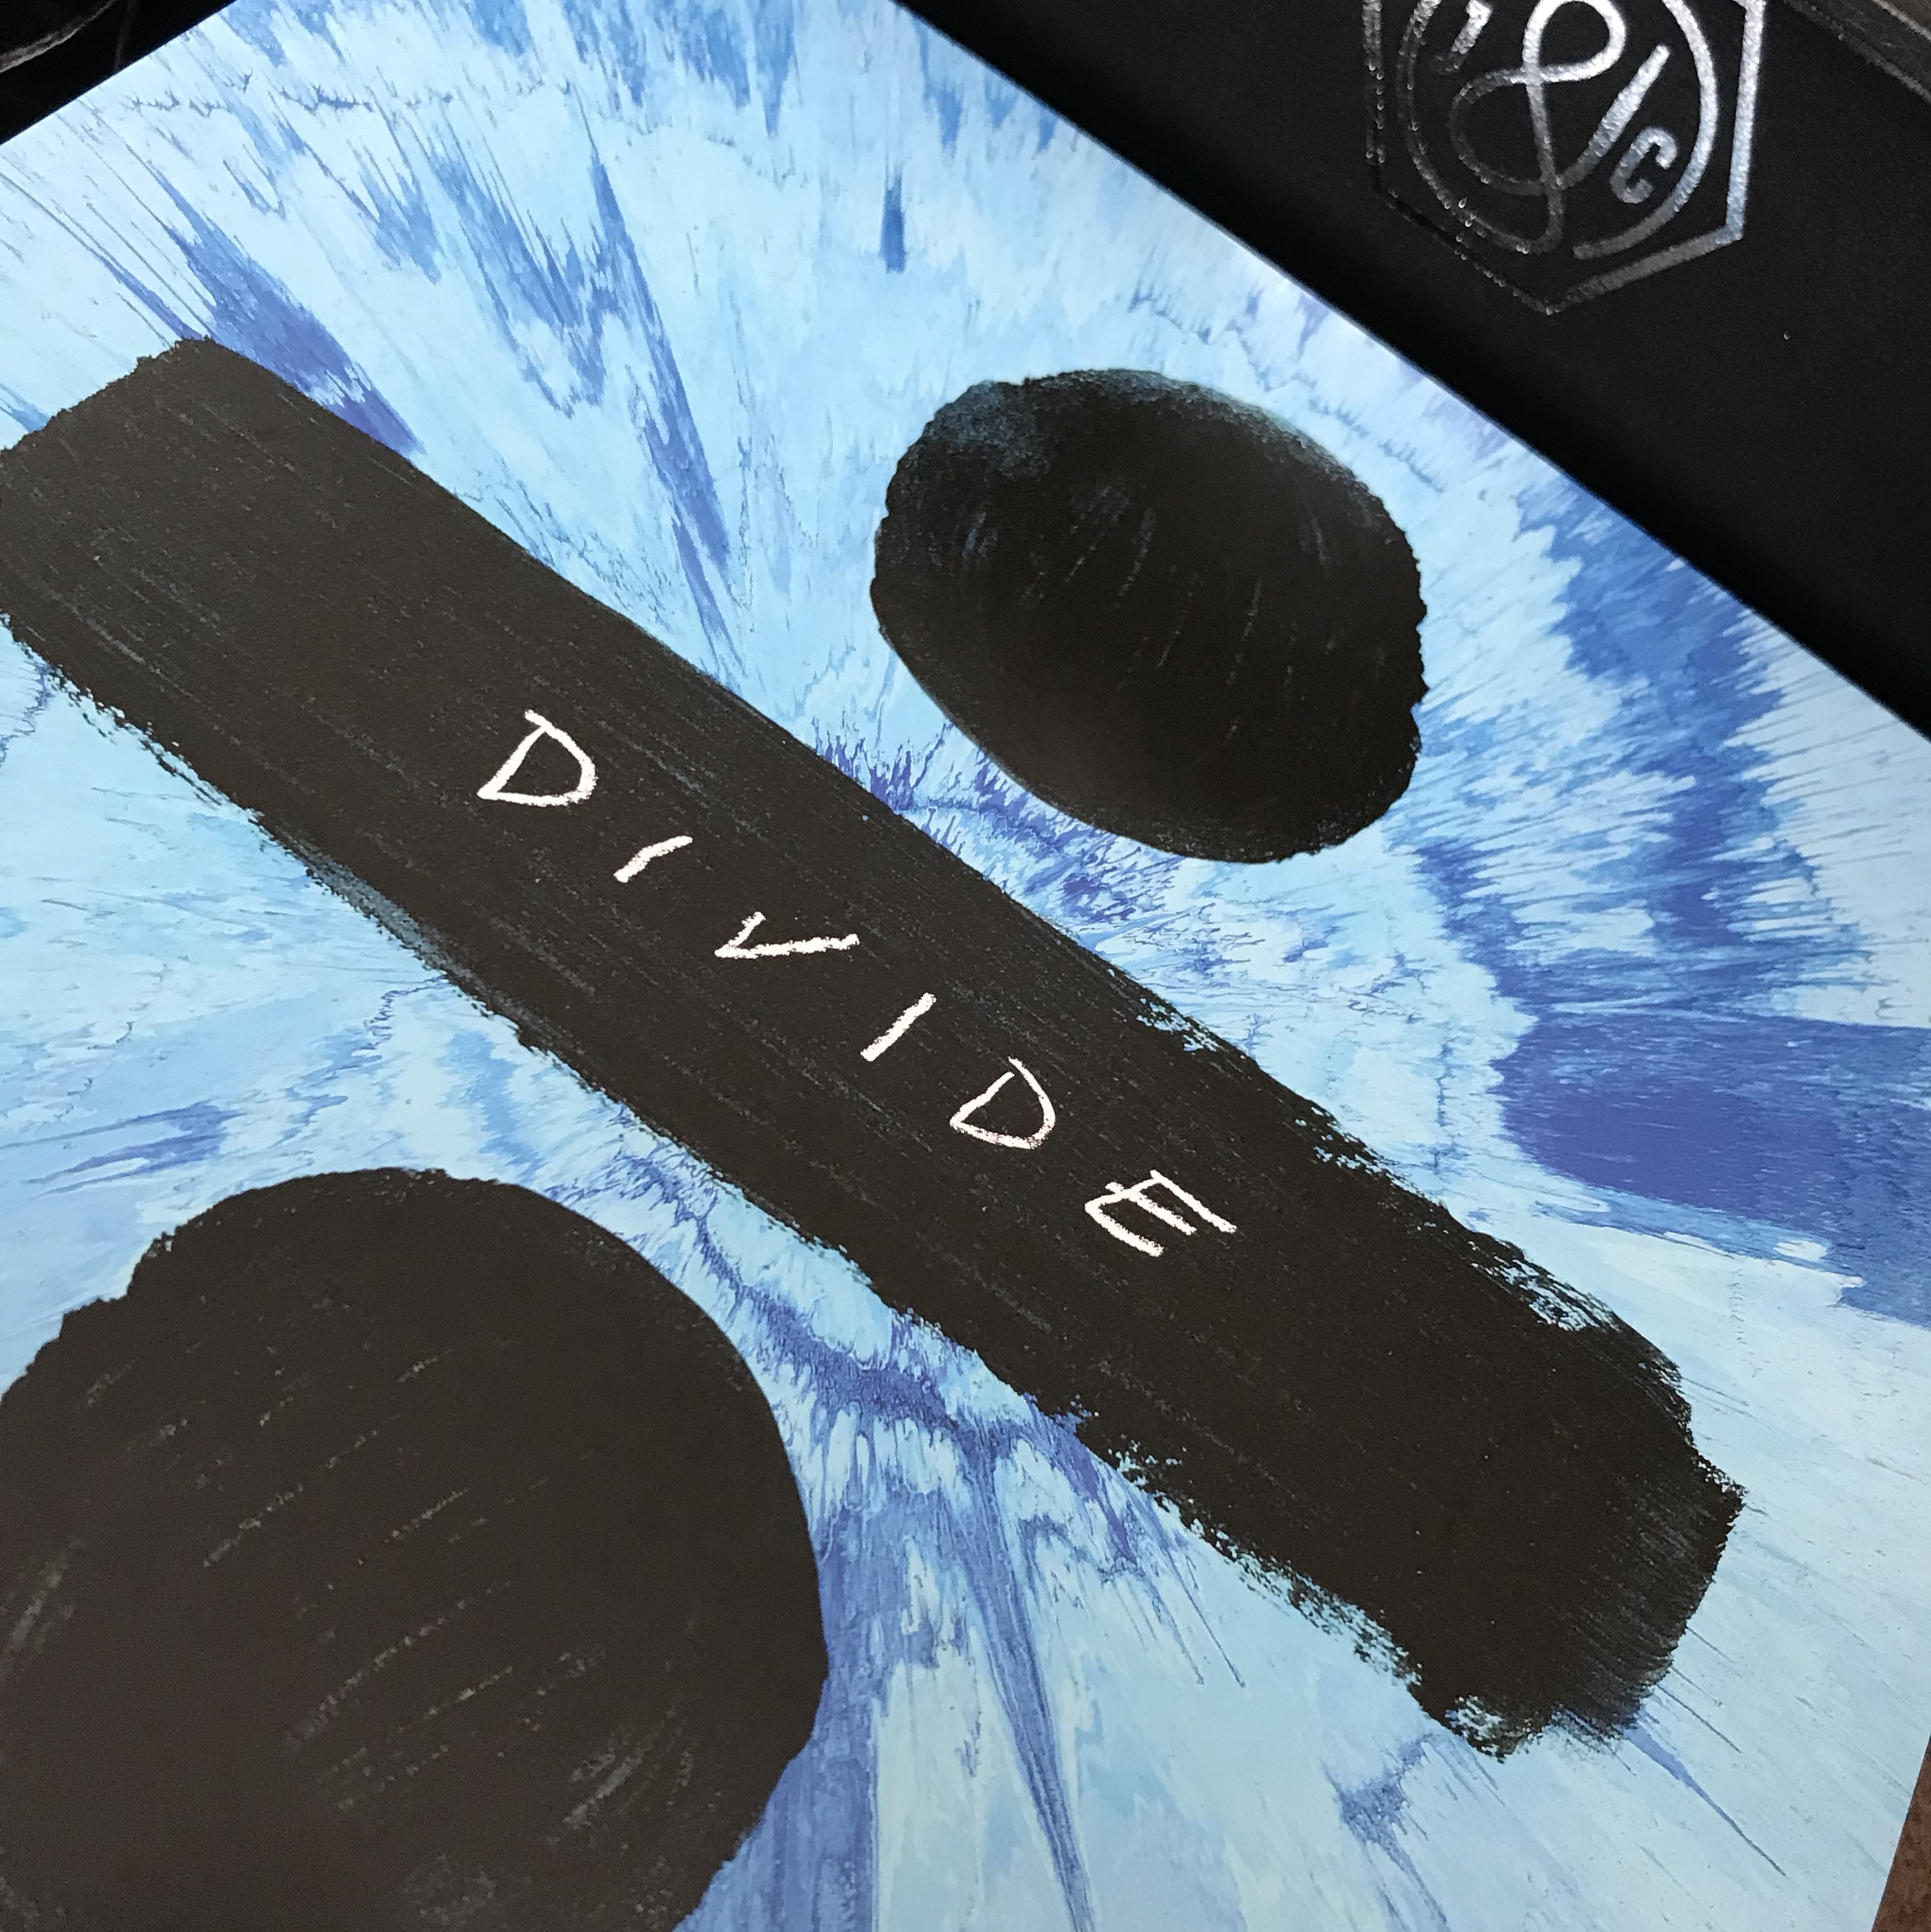 Ed sheeran - Divide vinyl record  Never used  - Depop